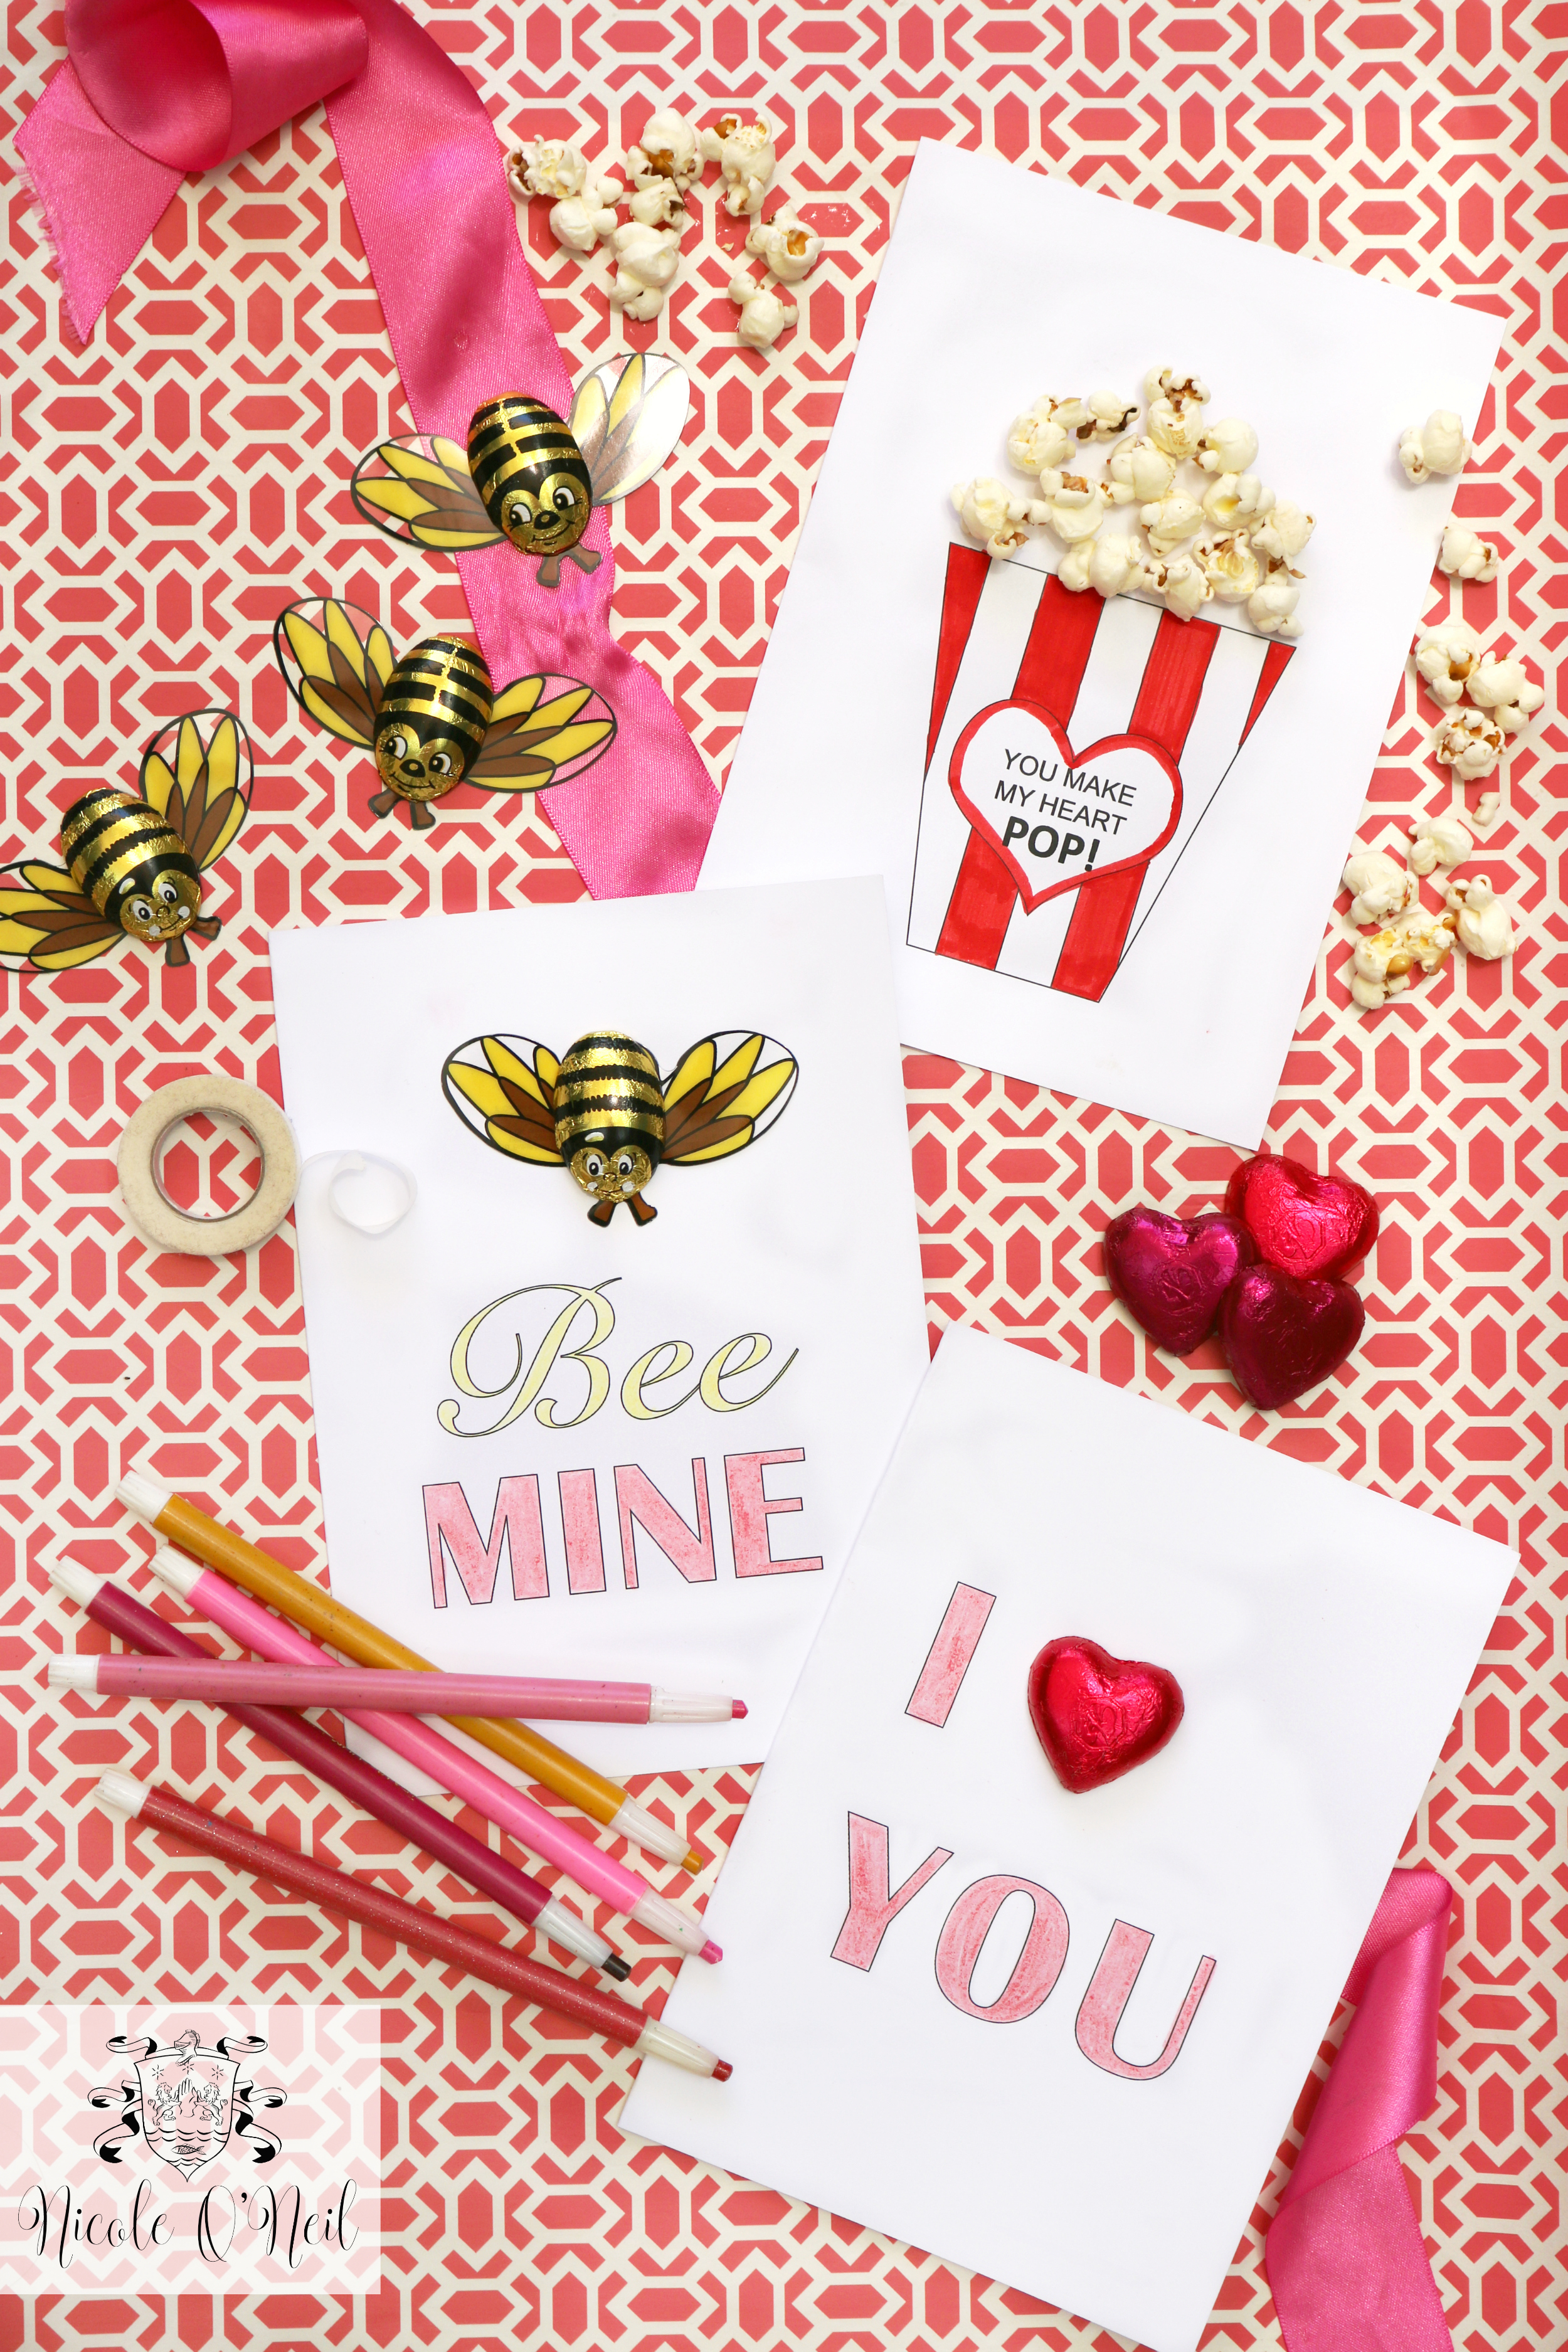 Free Printable Valentines Day Cards and Instructions - Cute Valentines Crafts for Kids